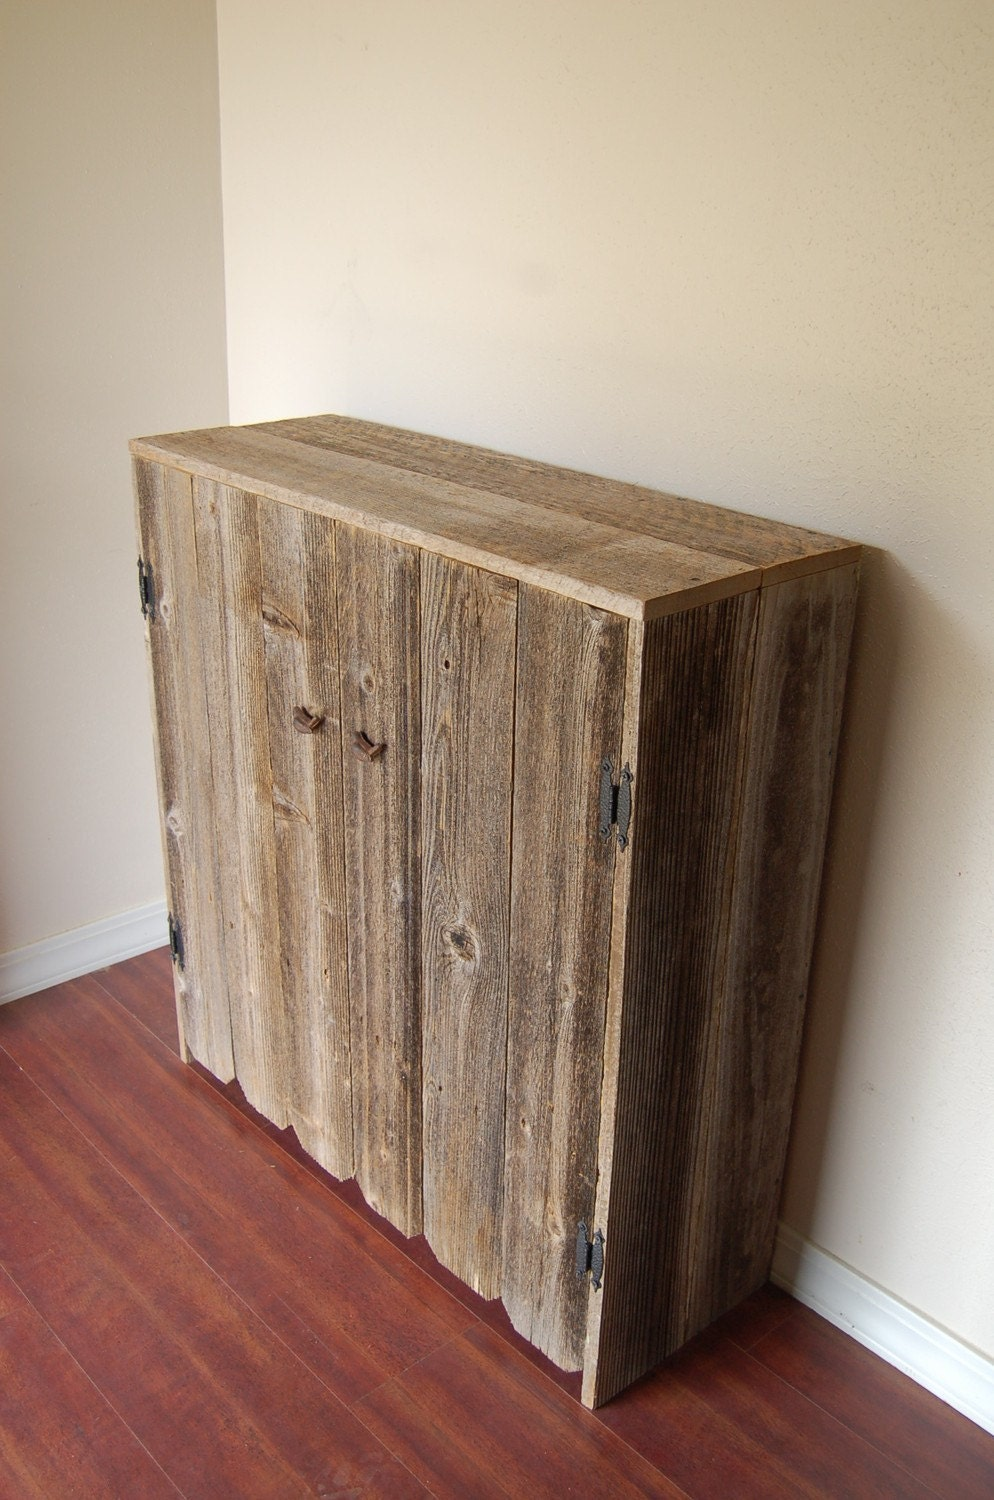 Reclaimed Wood Cabinets ~ Reclaimed wood cabinet large wooden pantry